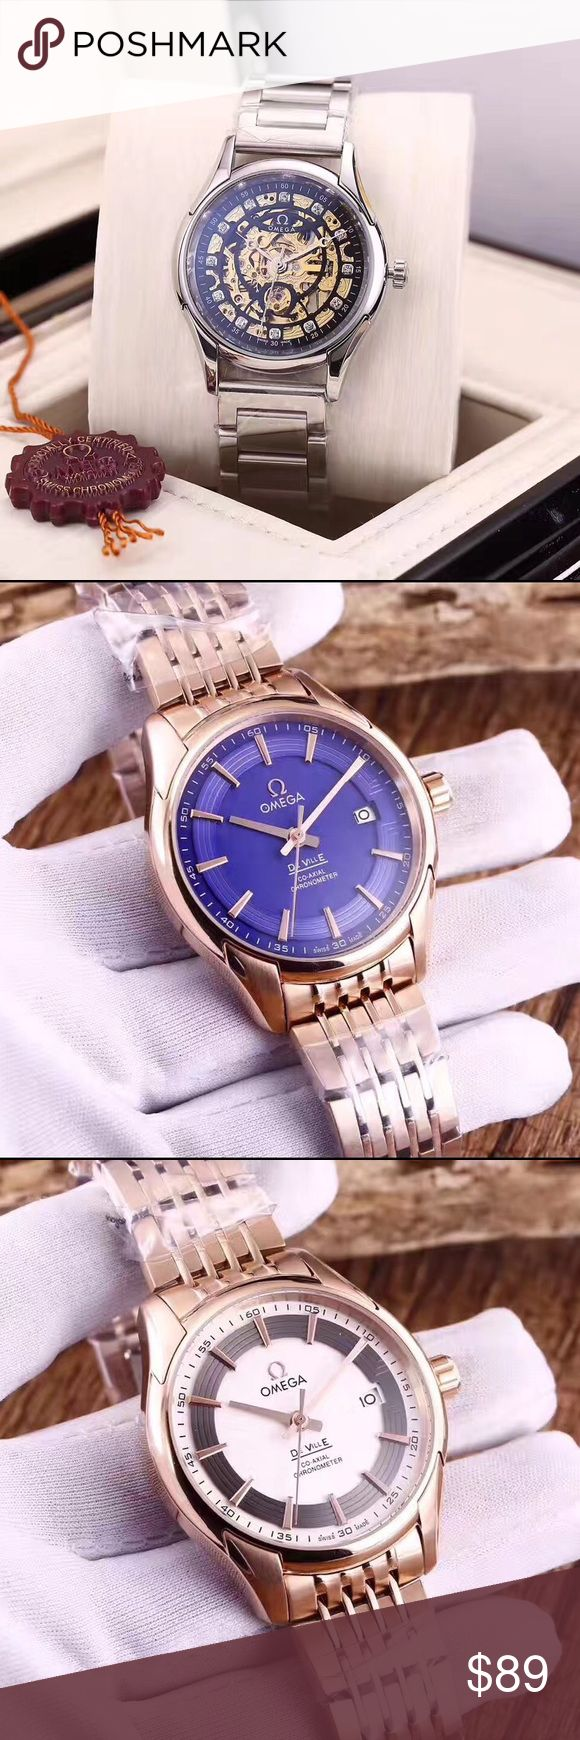 Cheap brand name watches For Men and Women. Shop The Largest Collection brand watches For Both Men and Women.Complimentary Overnight Shipping On All watches Orders. W h a t s A pp: +8 6 1 3 9 5 0 7 2 8 2 9 8 Omega Accessories Watches